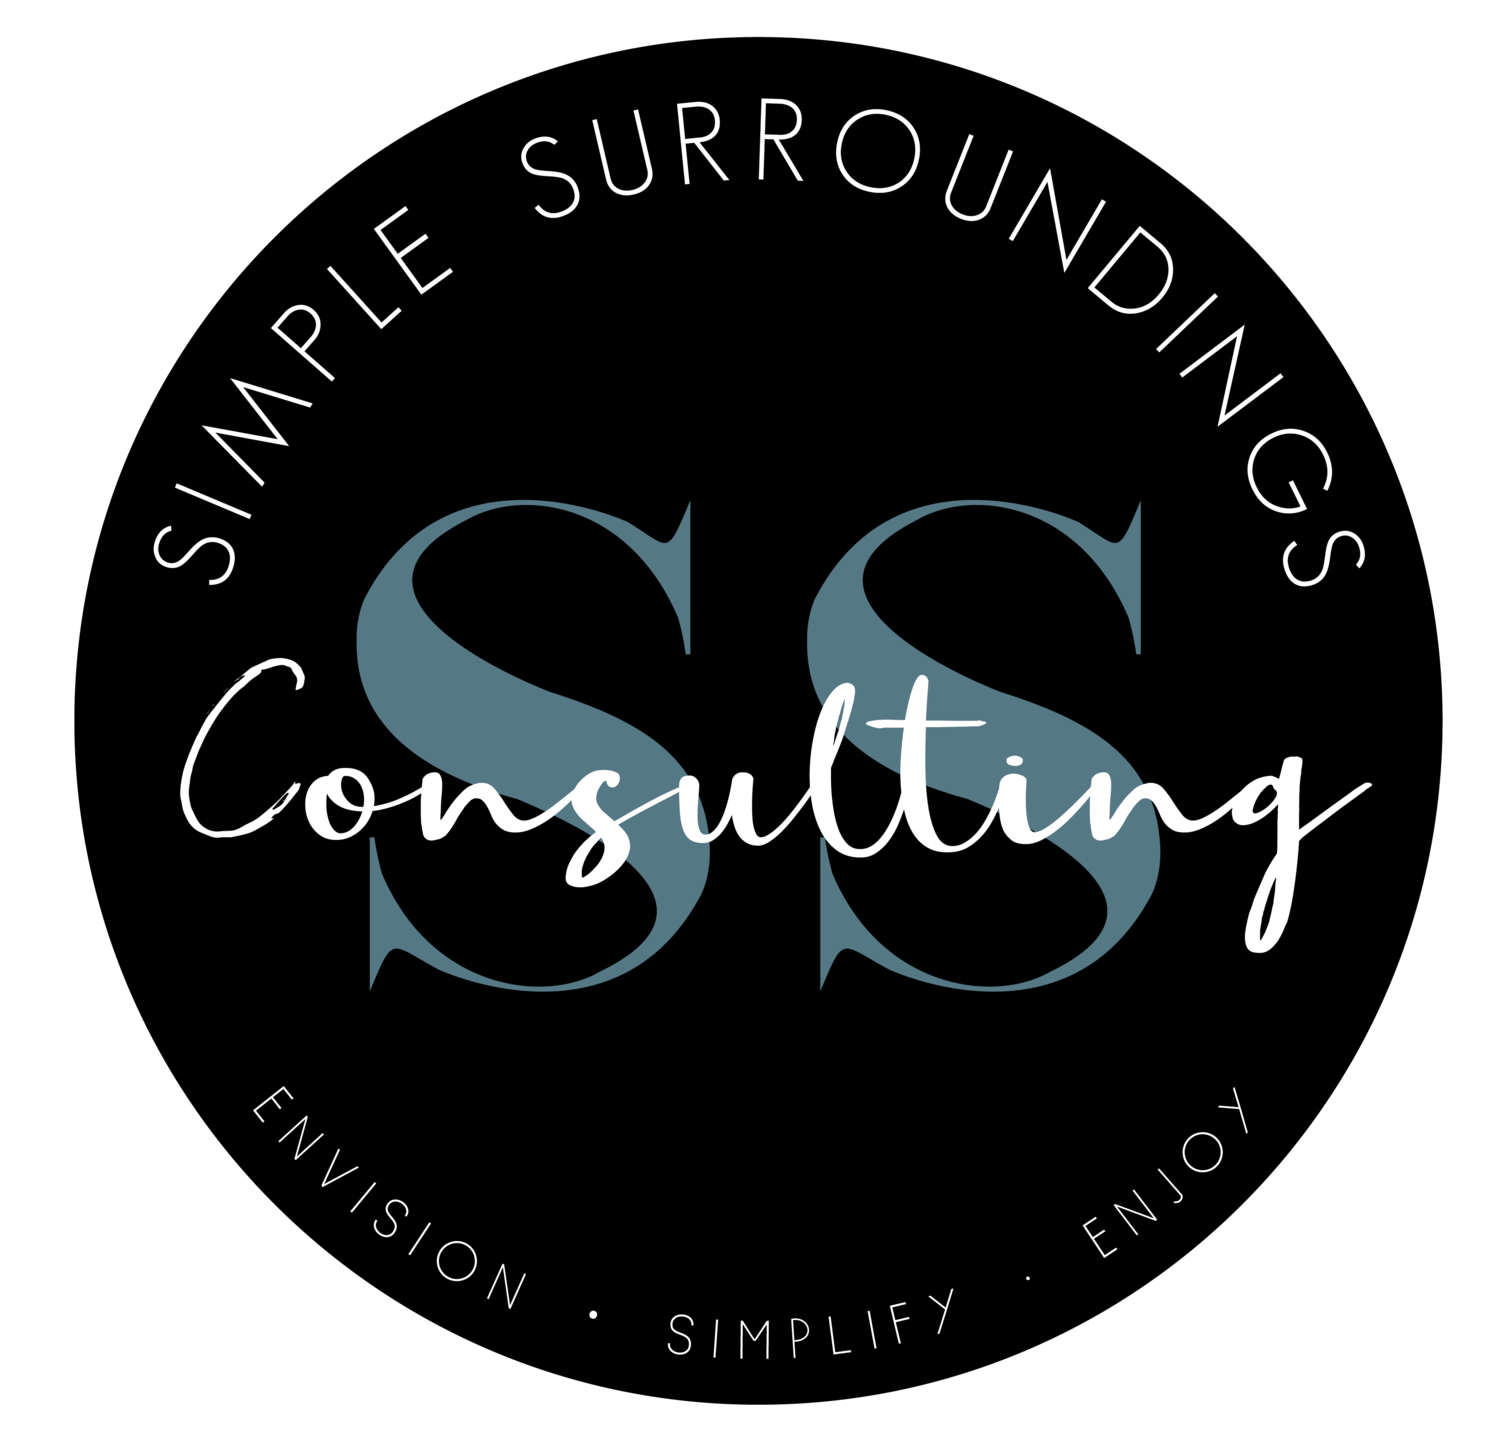 Simple Surroundings Consulting